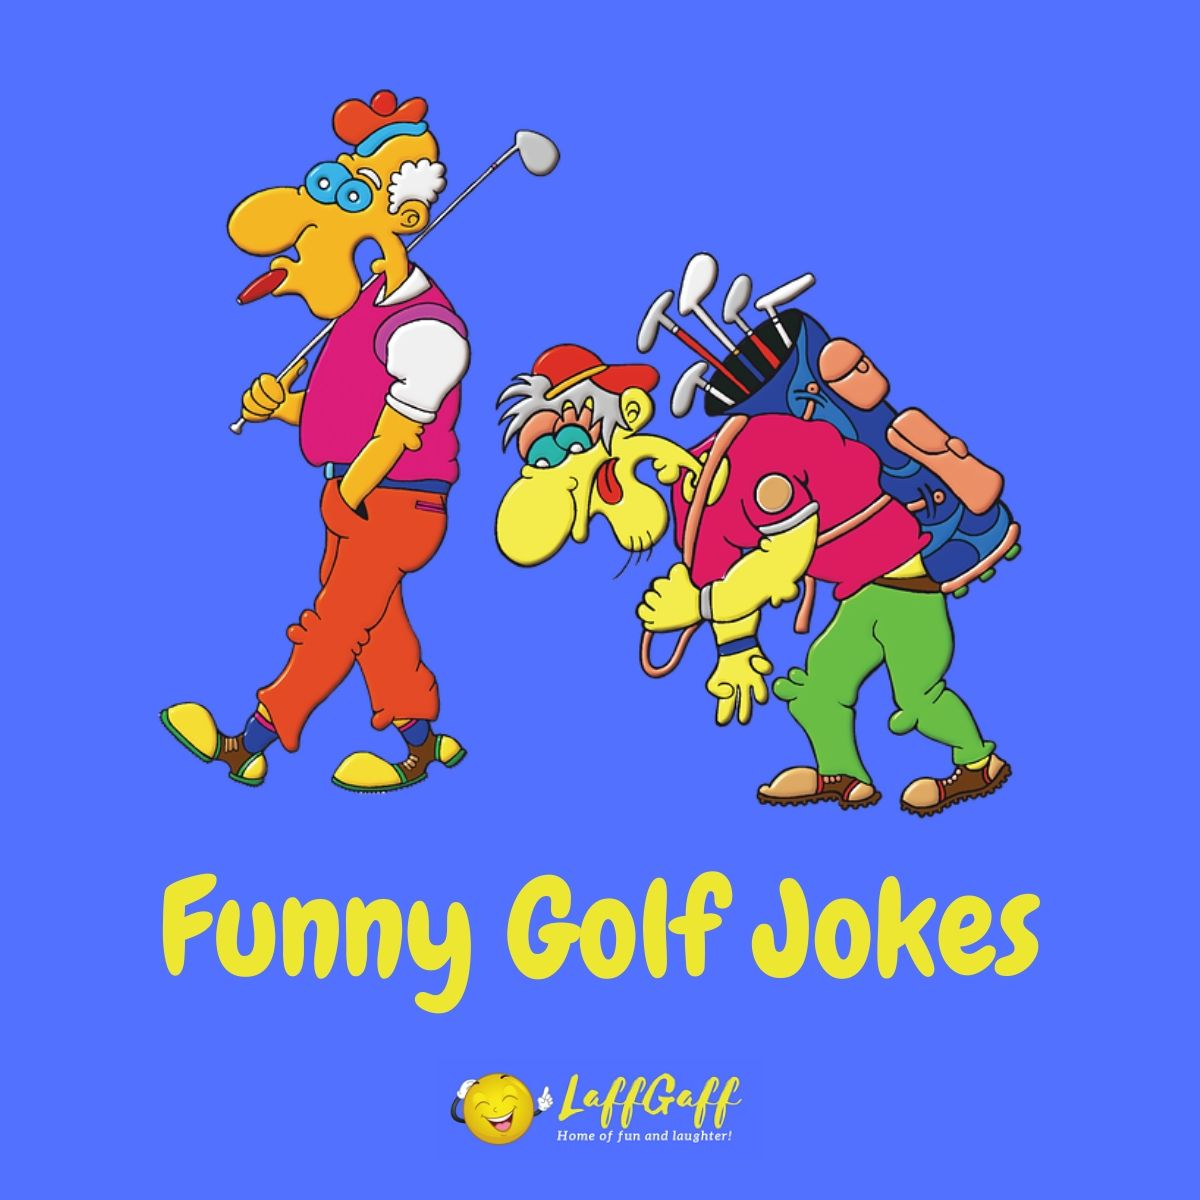 Featured image for a page of funny golf jokes and humor.